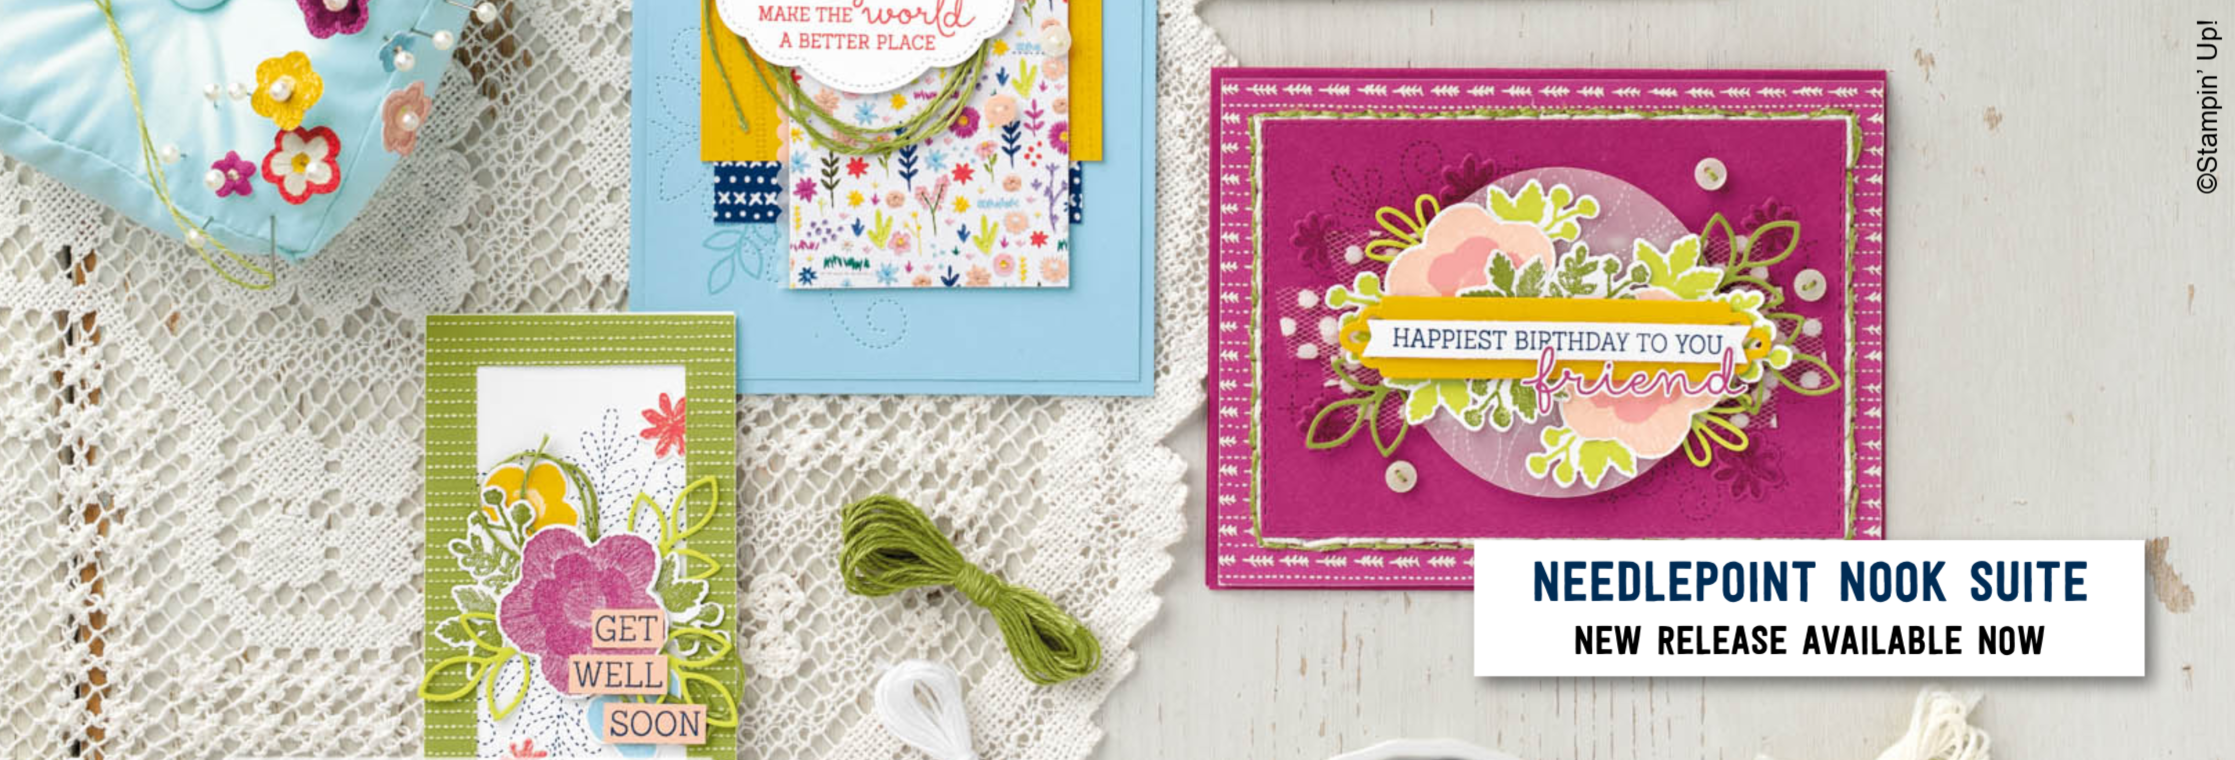 Needlepoint Nook Suite from Stampin' Up! - New release for 2019!